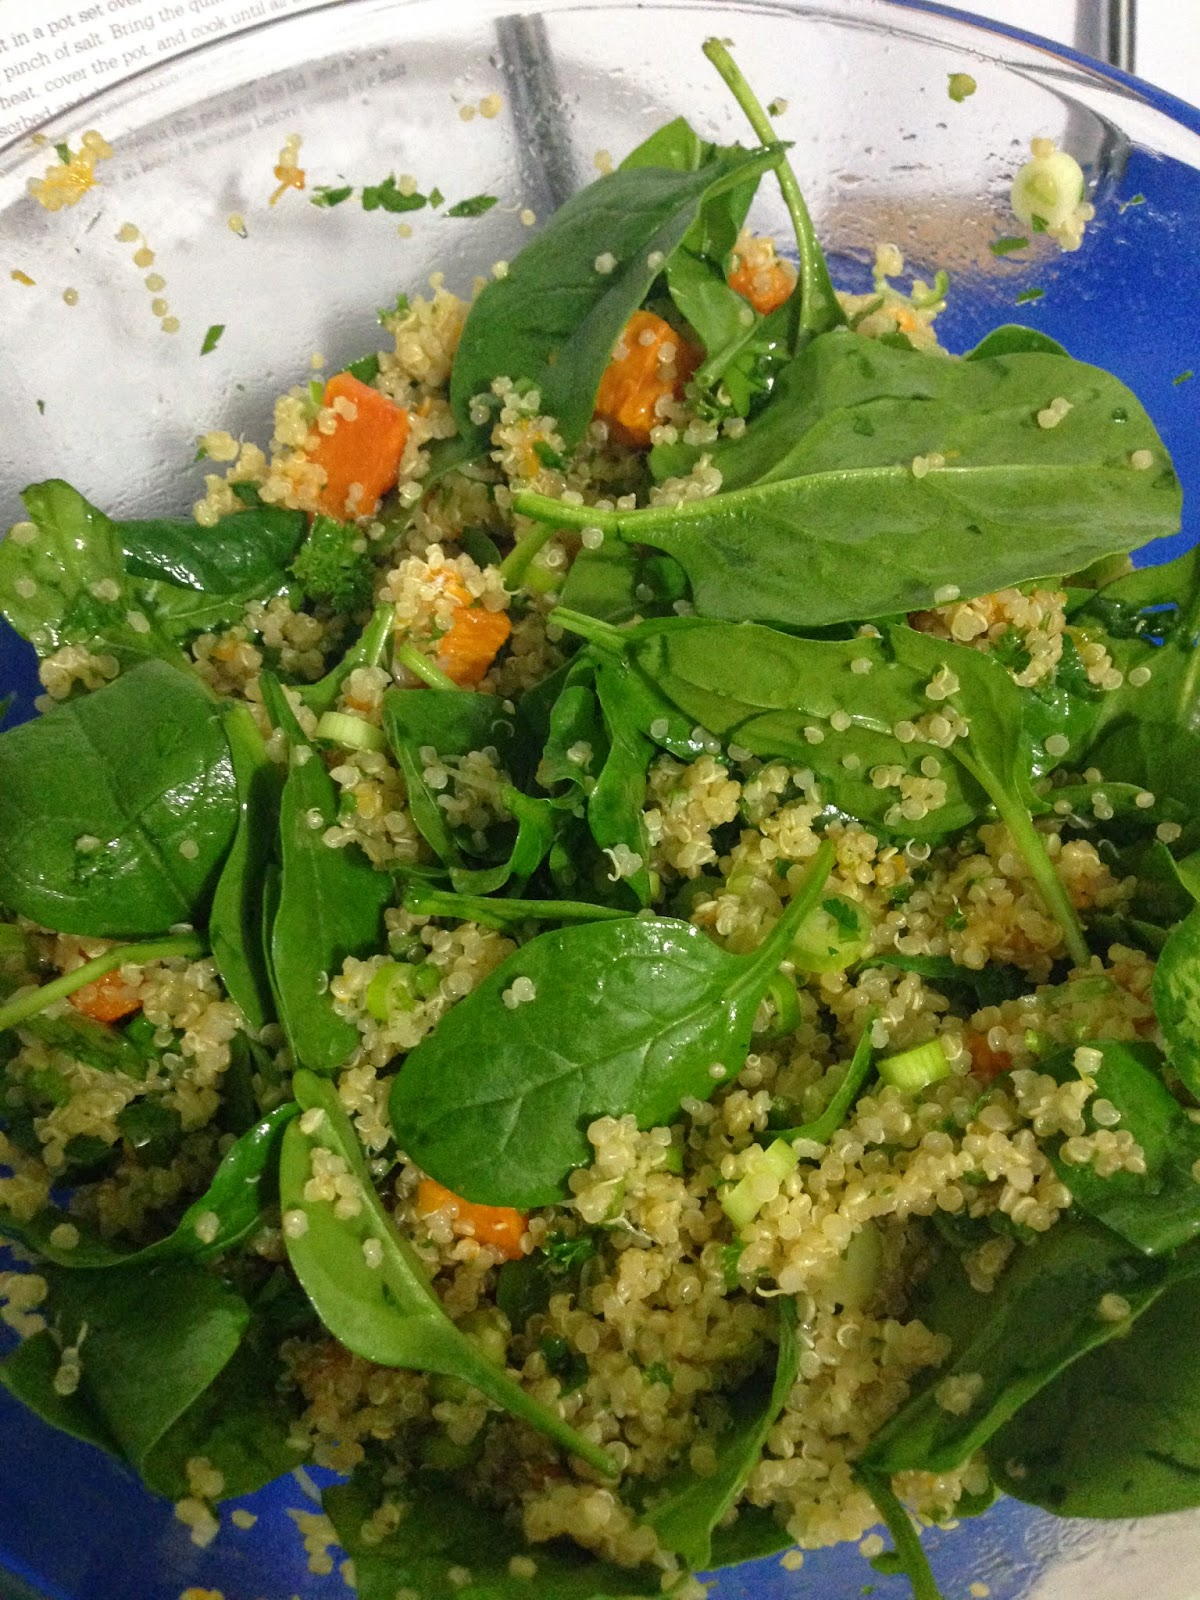 Quinoa with Butternut Squash, Scallions (spring onions) and Parsley from It's all Good.